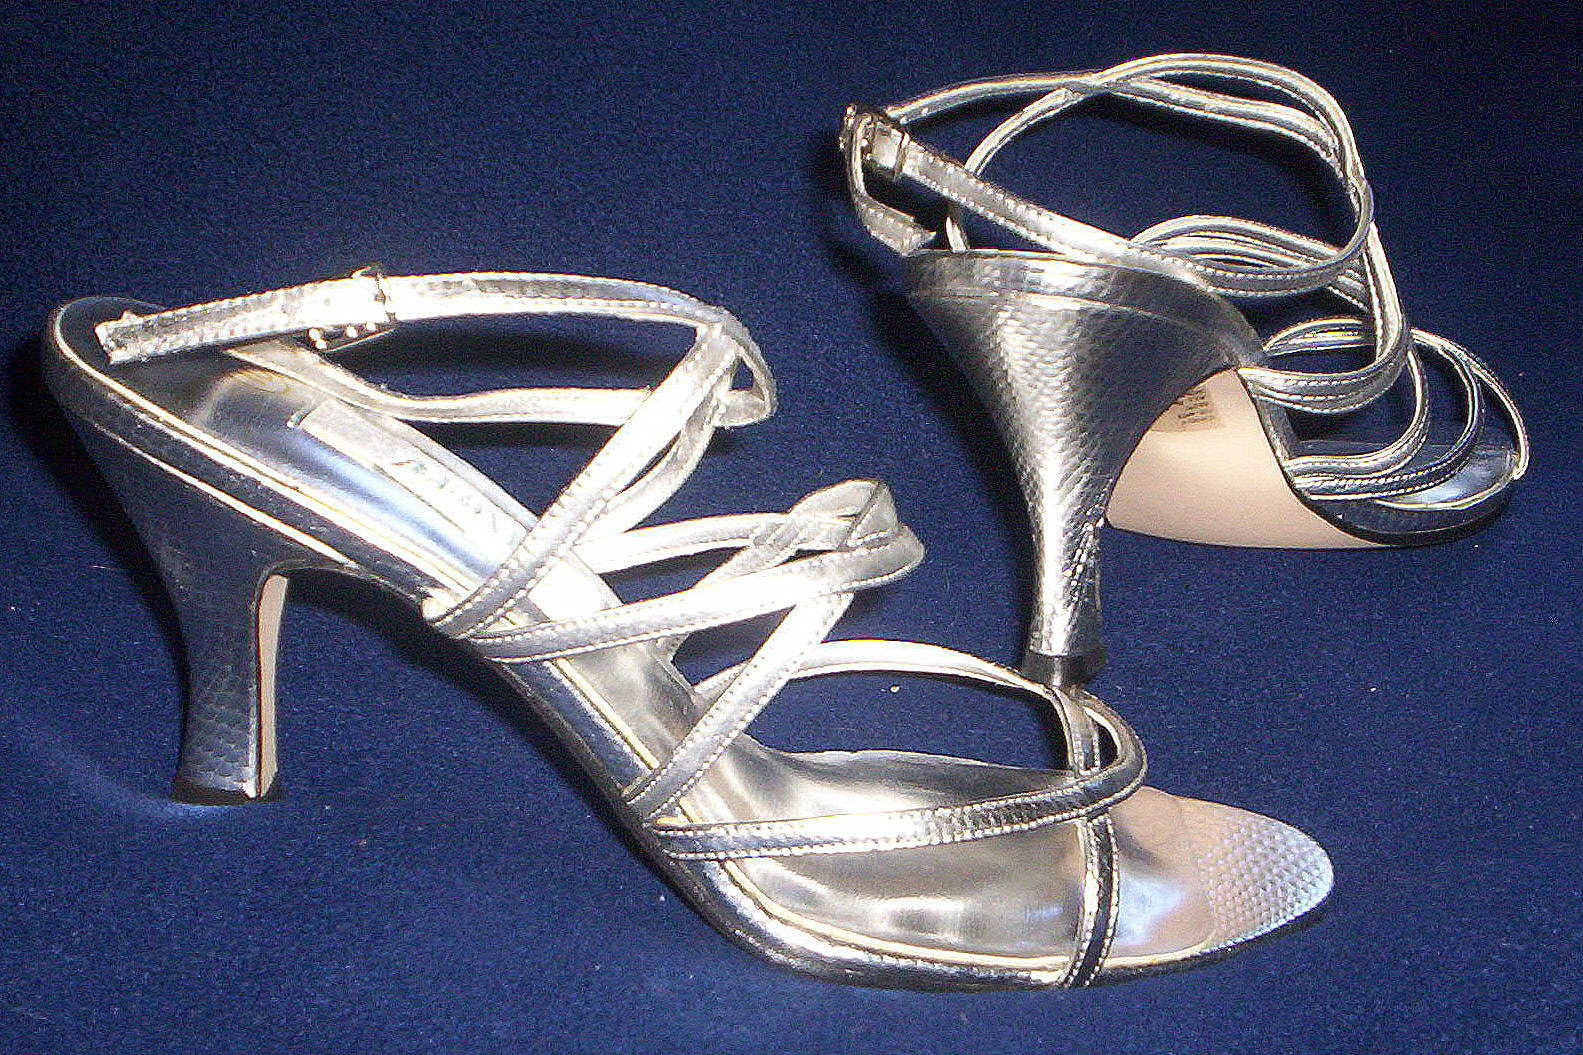 FREDERICO LEONE LADIES SILVER BRIDAL FORMAL STRAPPY SANDALS SHOES s9½ NEW IN BOX